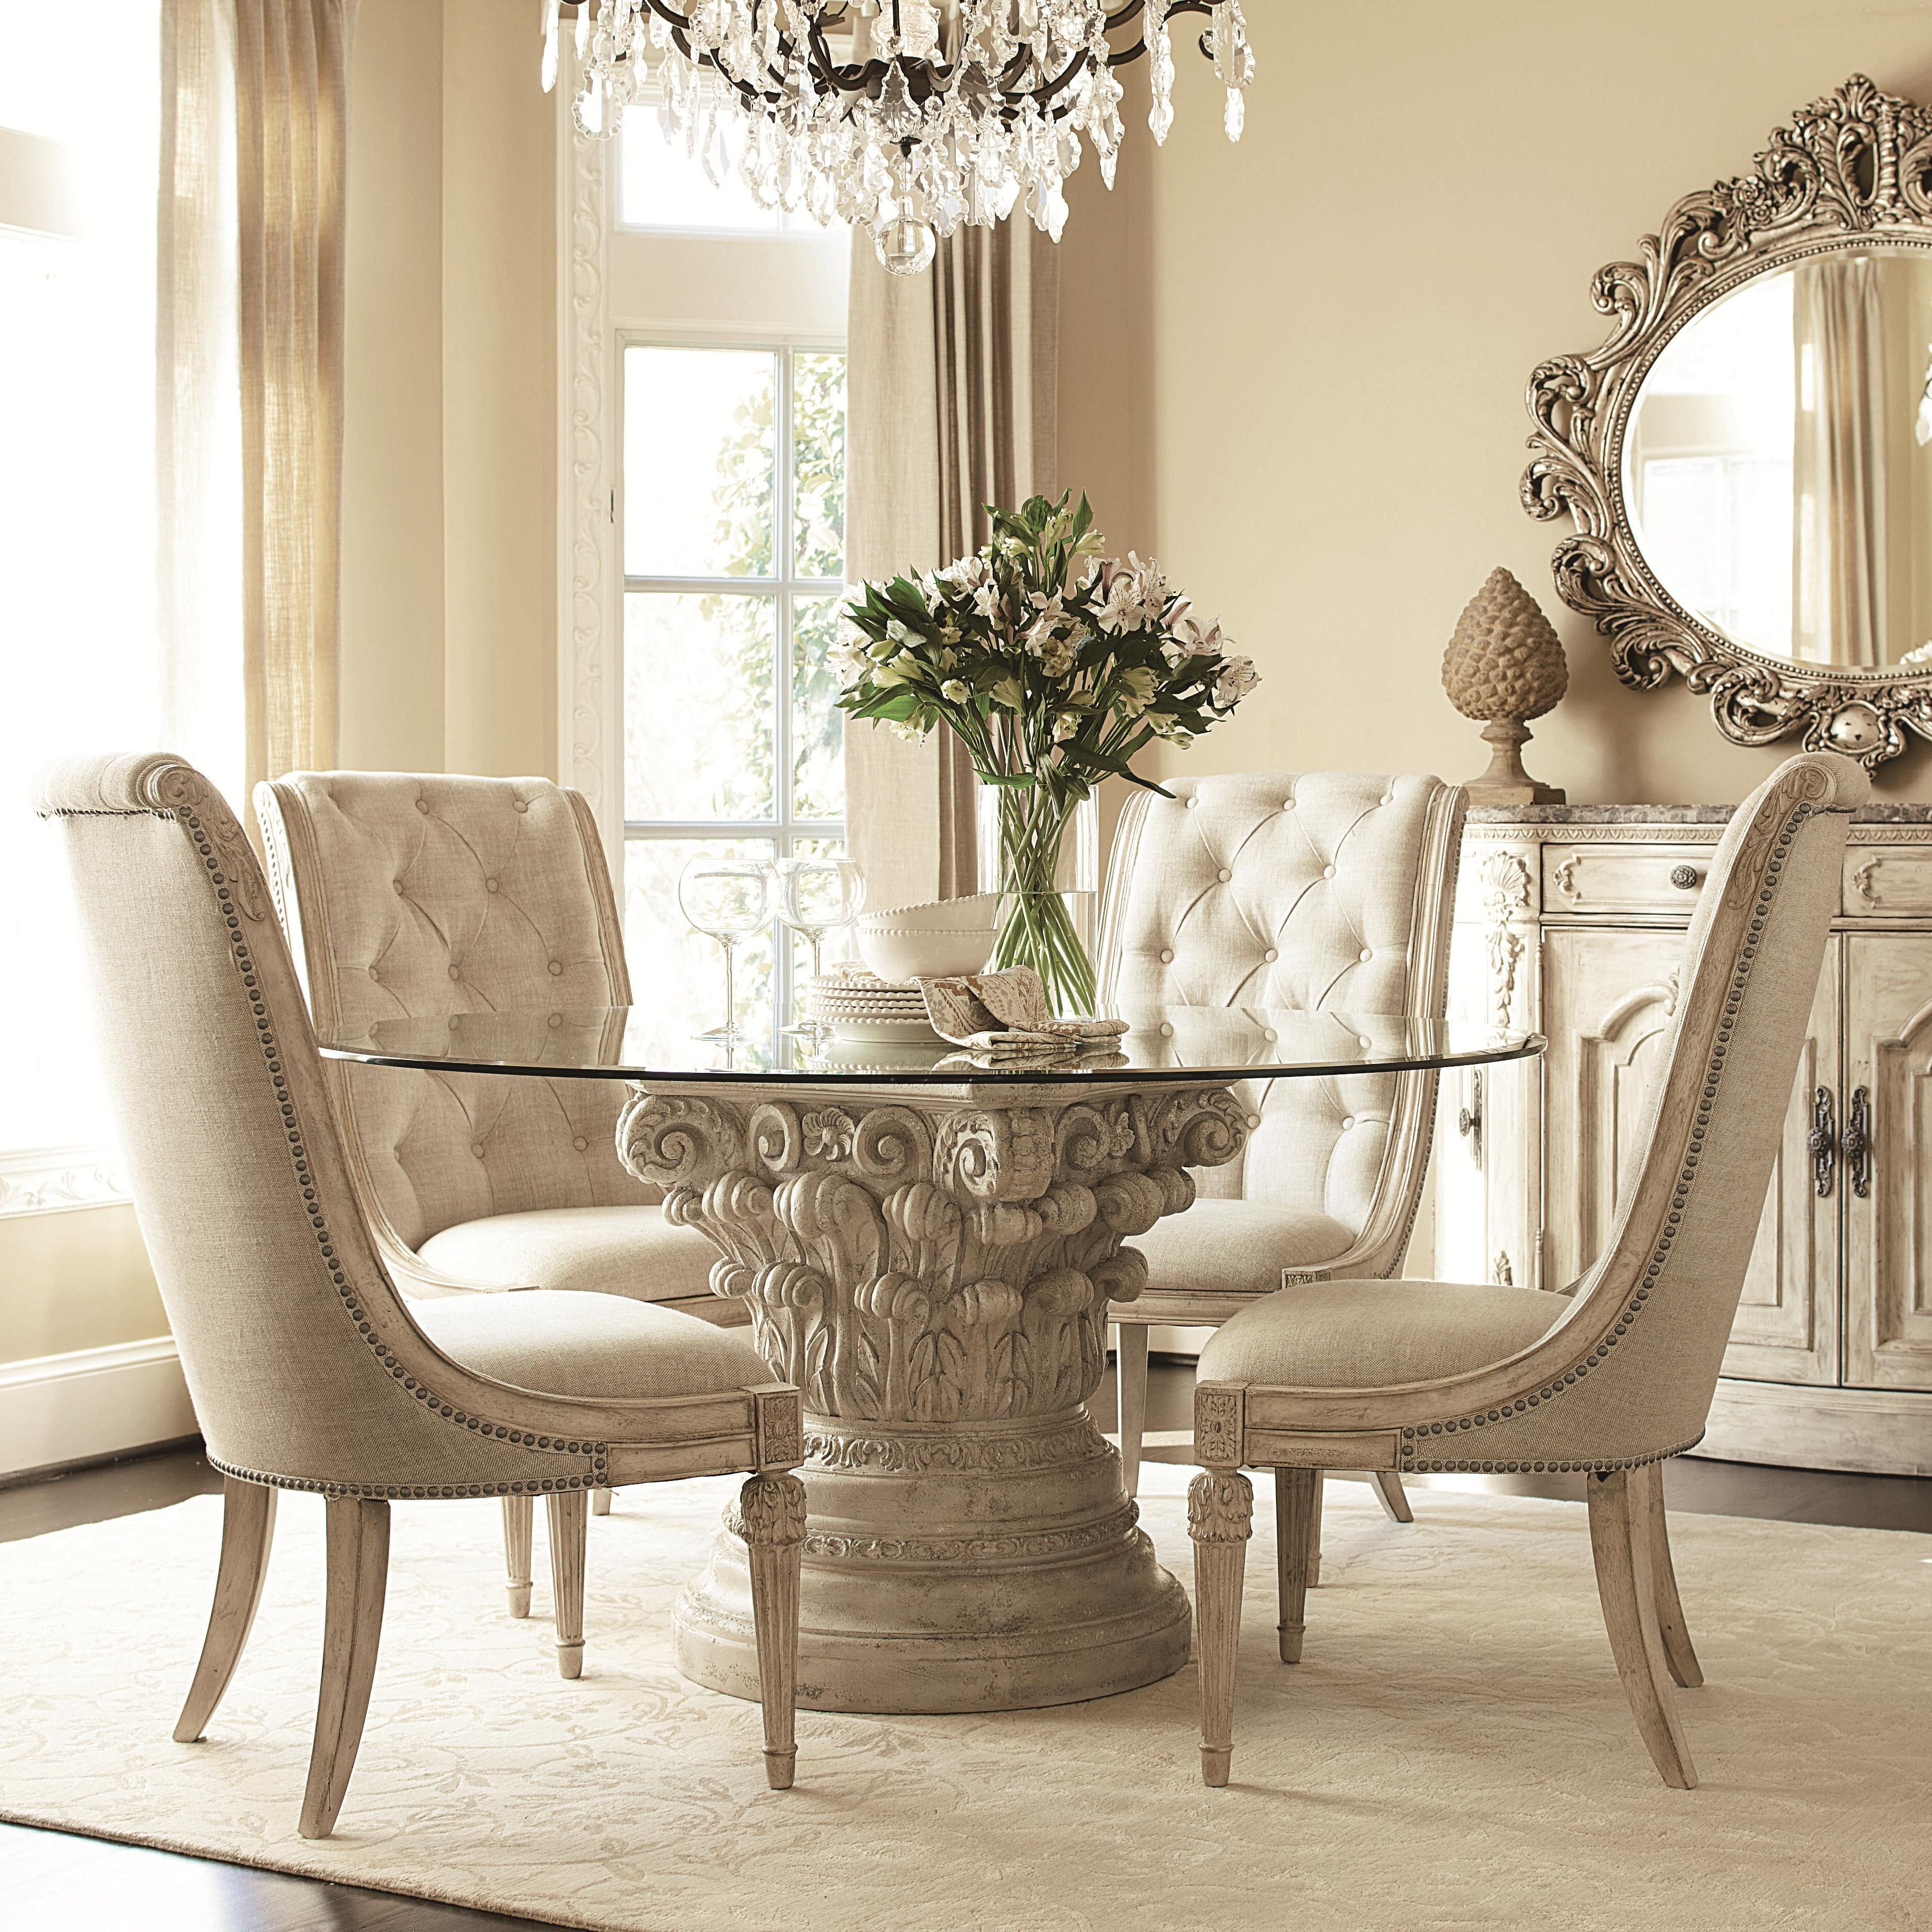 American Drew Jessica Mcclintock Home – The Boutique Collection 5 Regarding Latest Caira 7 Piece Rectangular Dining Sets With Diamond Back Side Chairs (View 3 of 25)